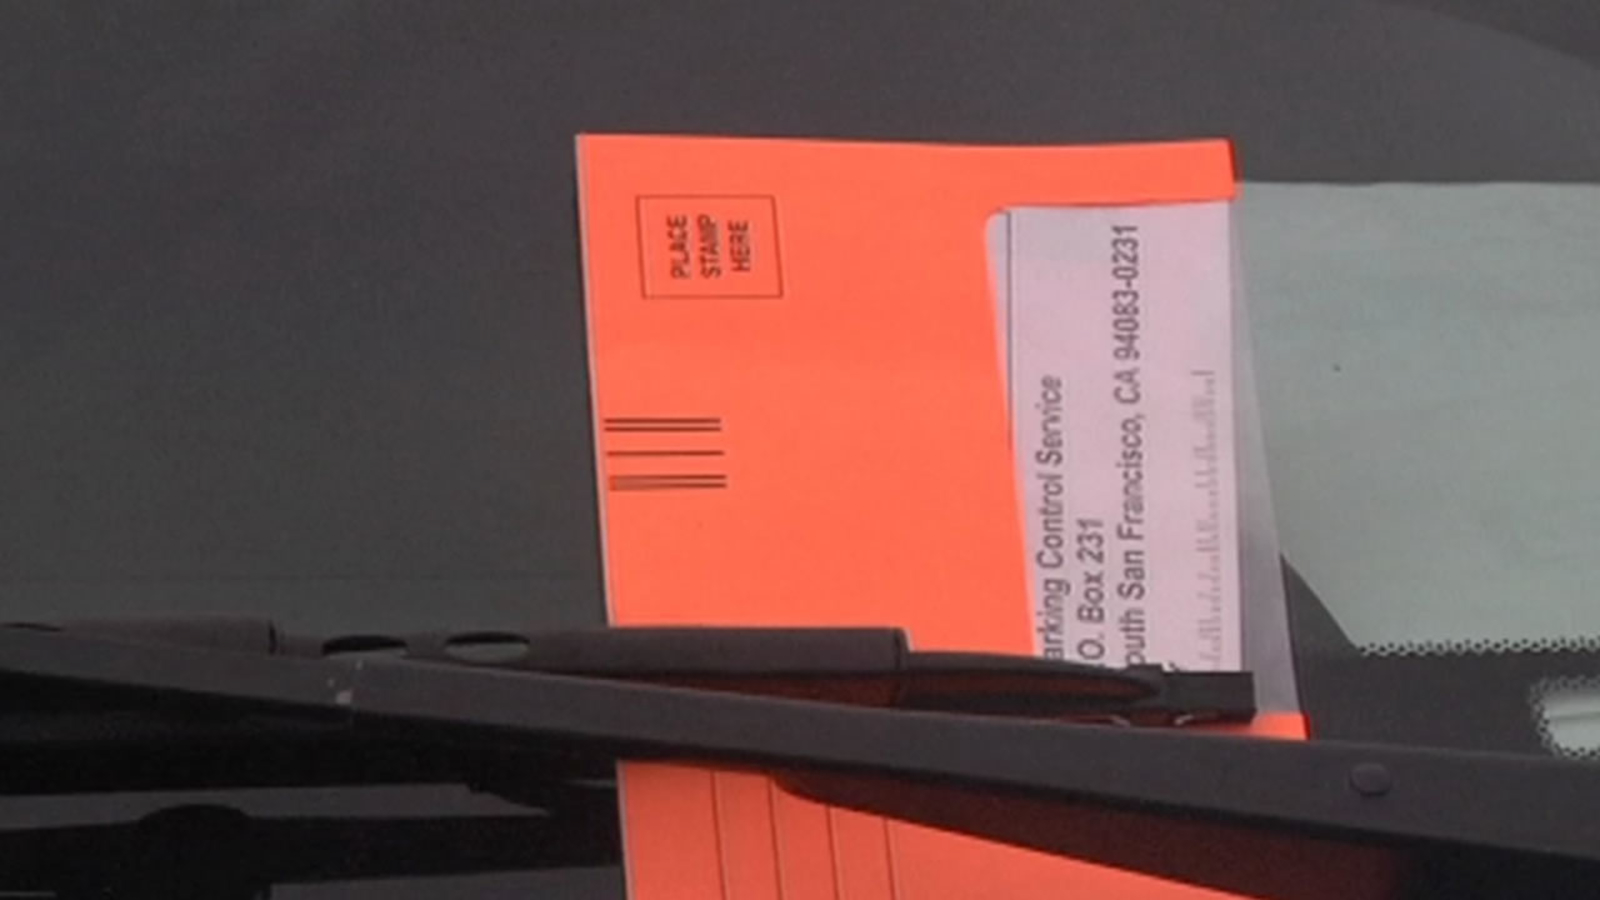 7 On Your Side: You may not have to pay these parking tickets